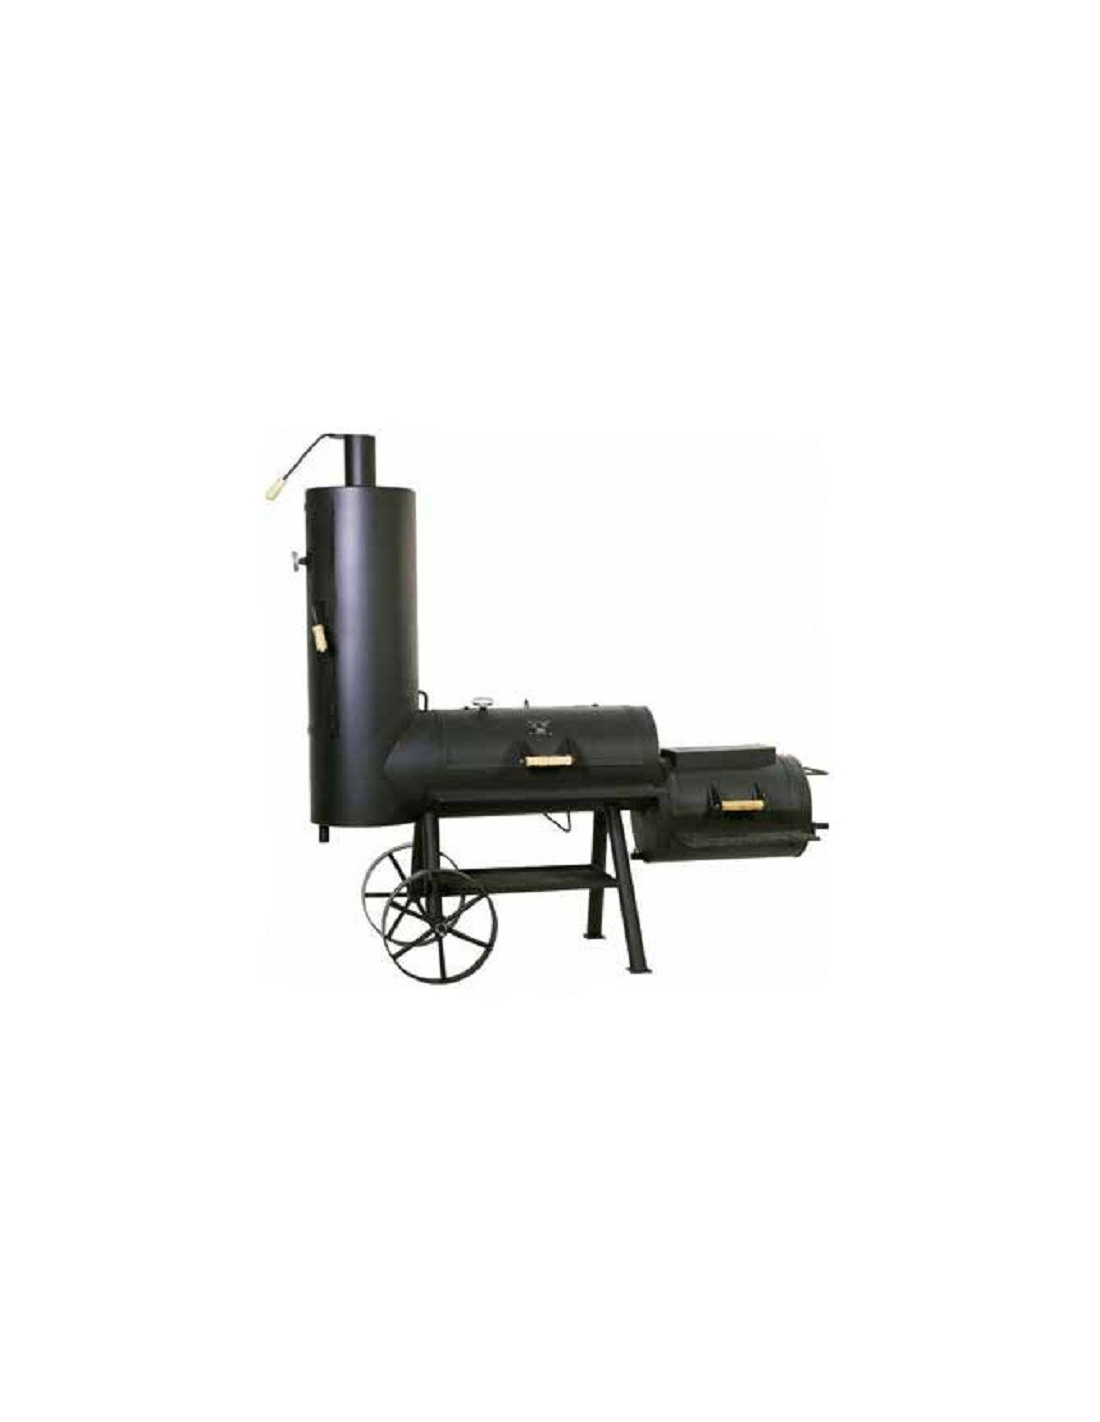 Barbecue Locomotive Basic Chuckwagon 16